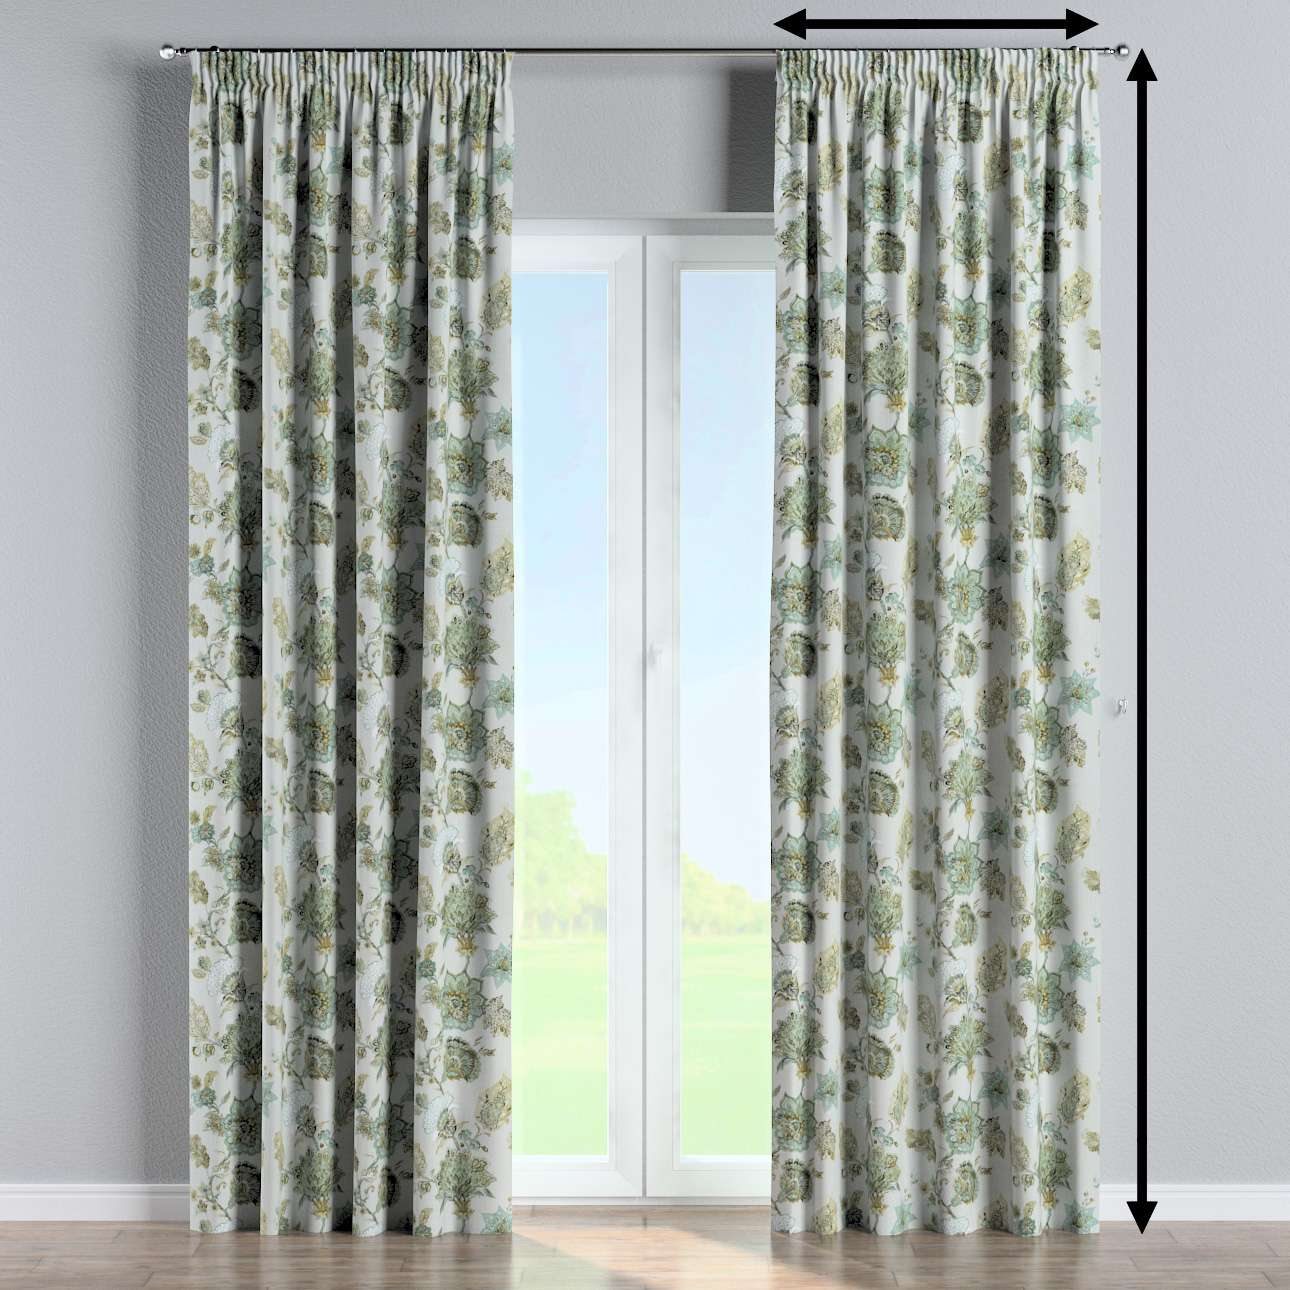 Pencil pleat curtain in collection Flowers, fabric: 143-67